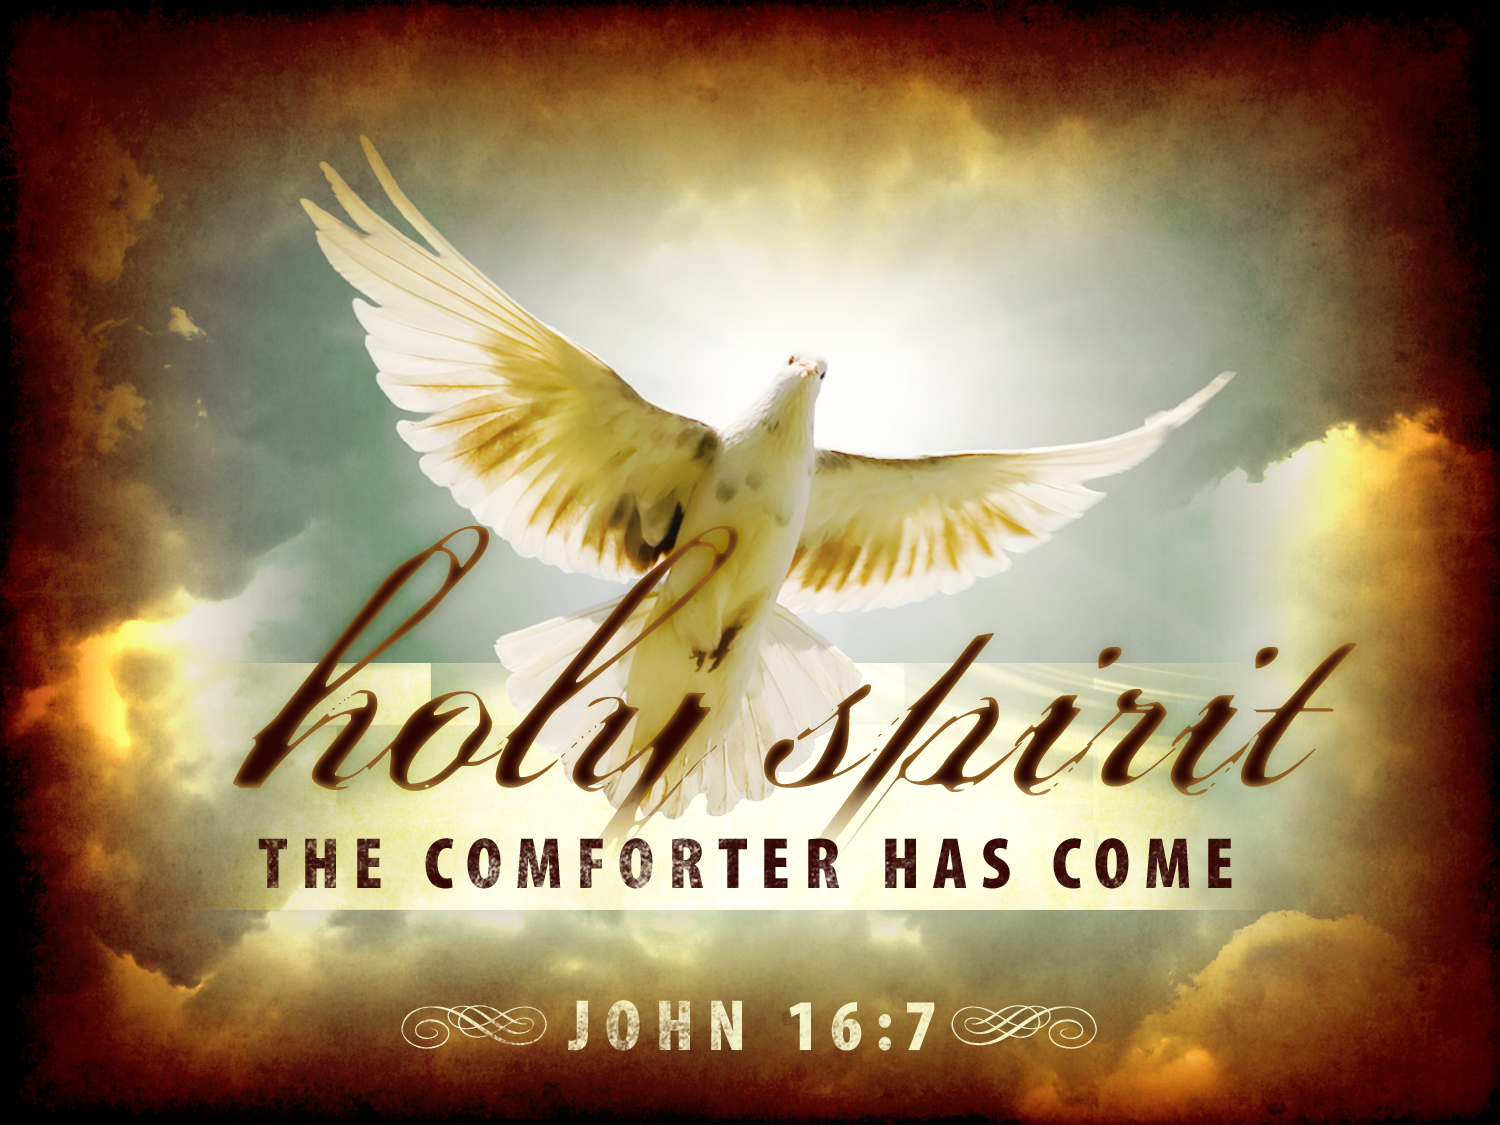 Christian Graphic Holy Spirit Dove Wallpaper Free Download Use On PC Mac